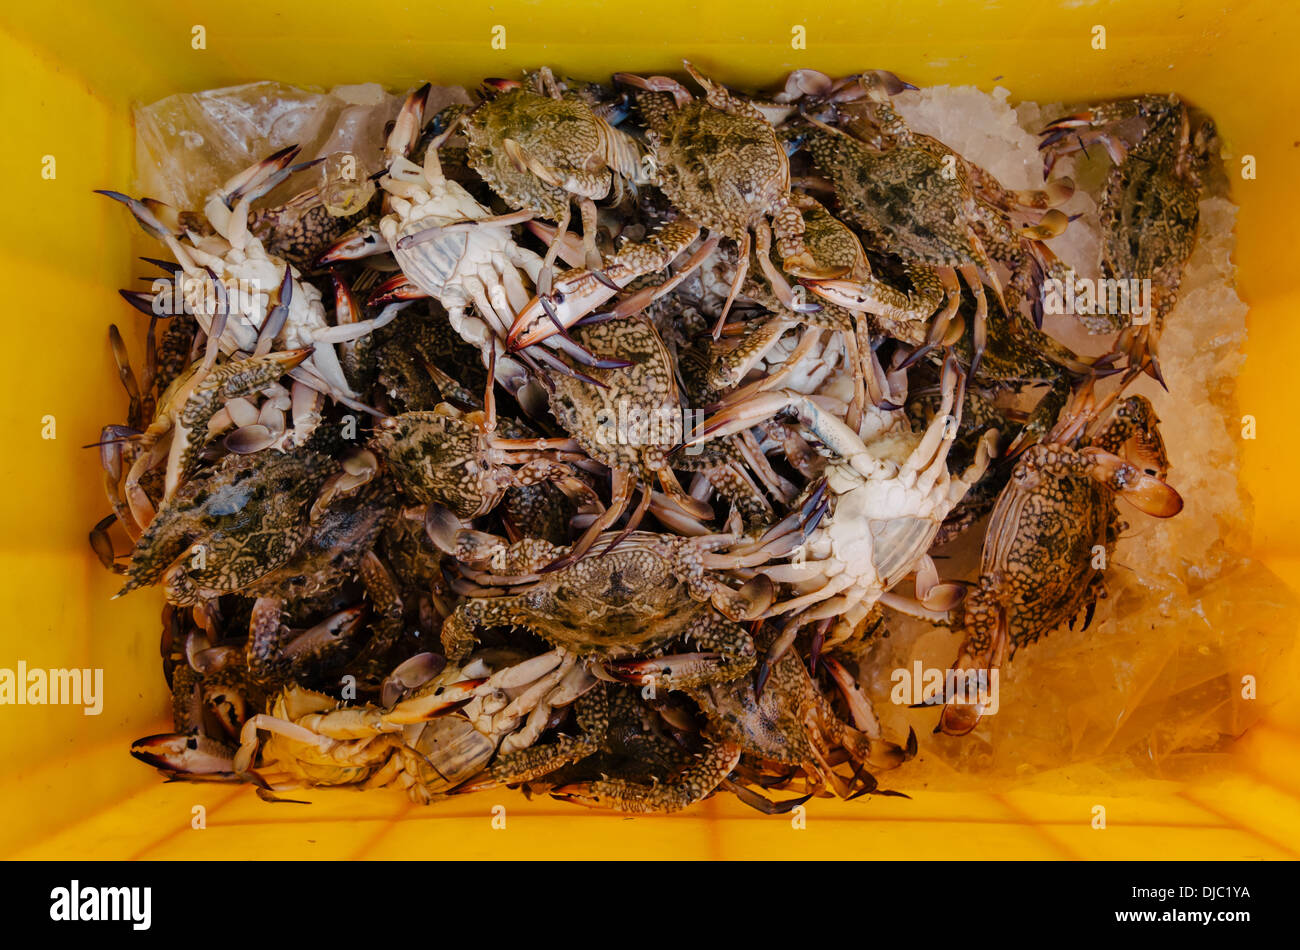 Fresh blue crabs on yellow container waiting to be put up for sale at Deira's Fish Market. Dubai, UAE. - Stock Image